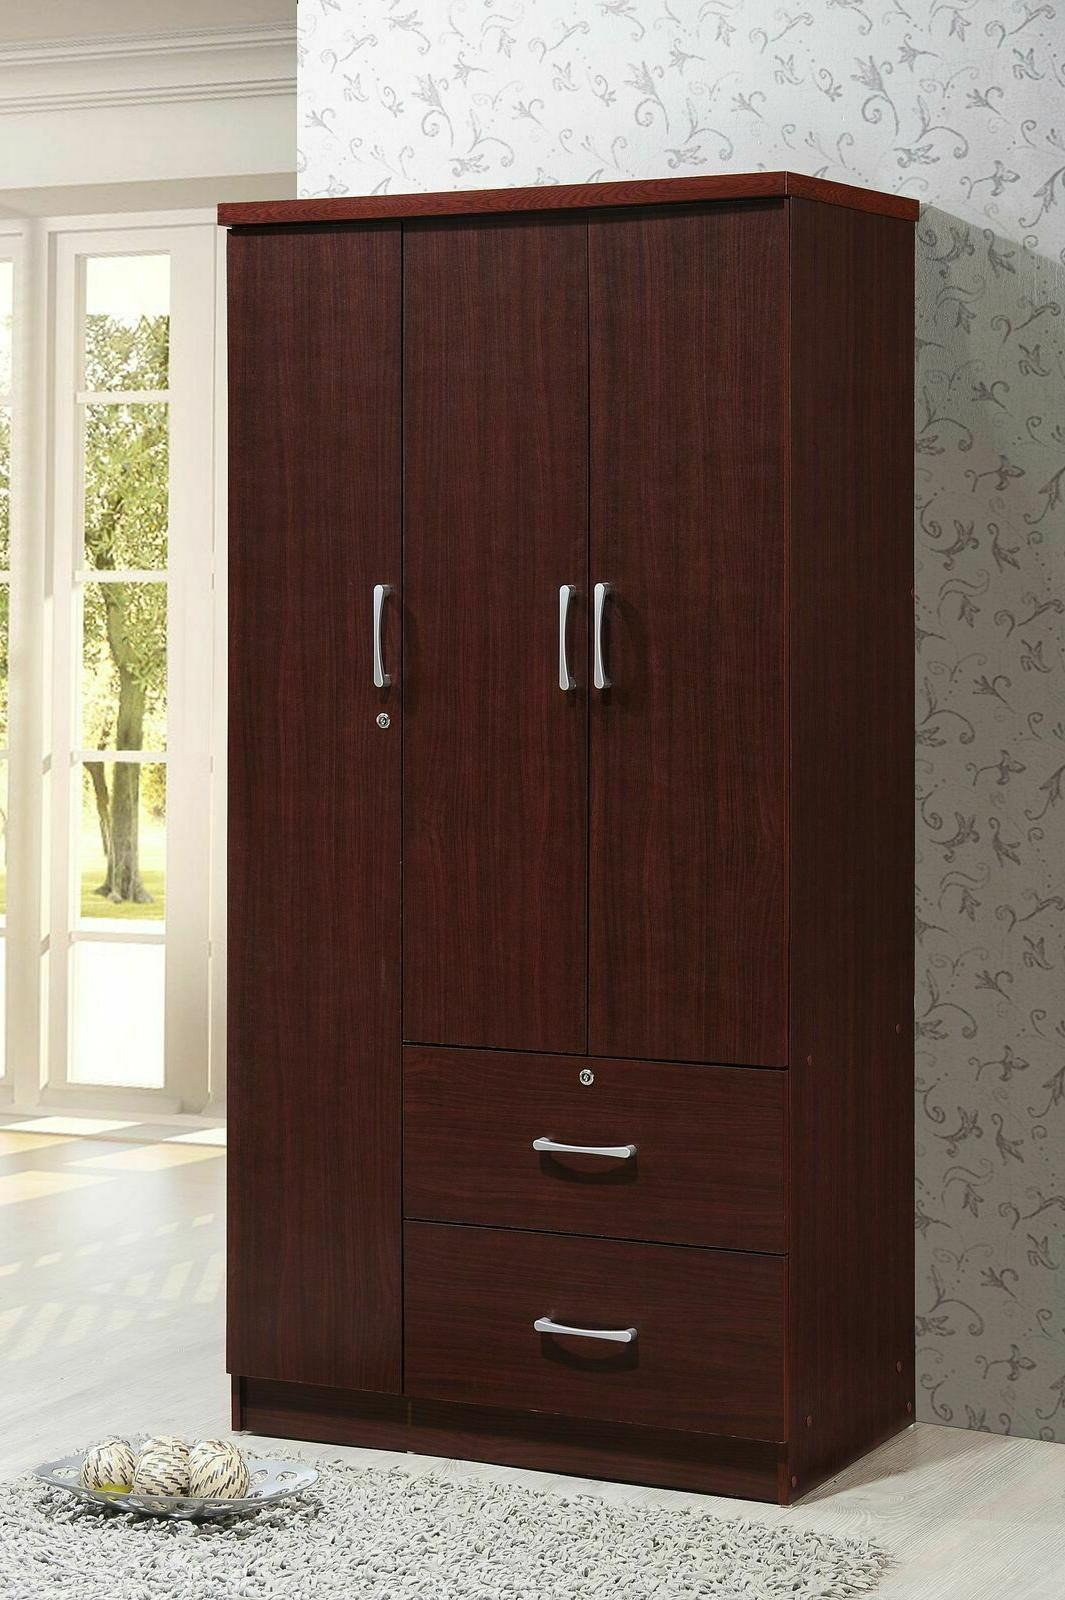 3-Door Bedroom Armoire w/ Drawers Closet Cabinet Clothes Sto